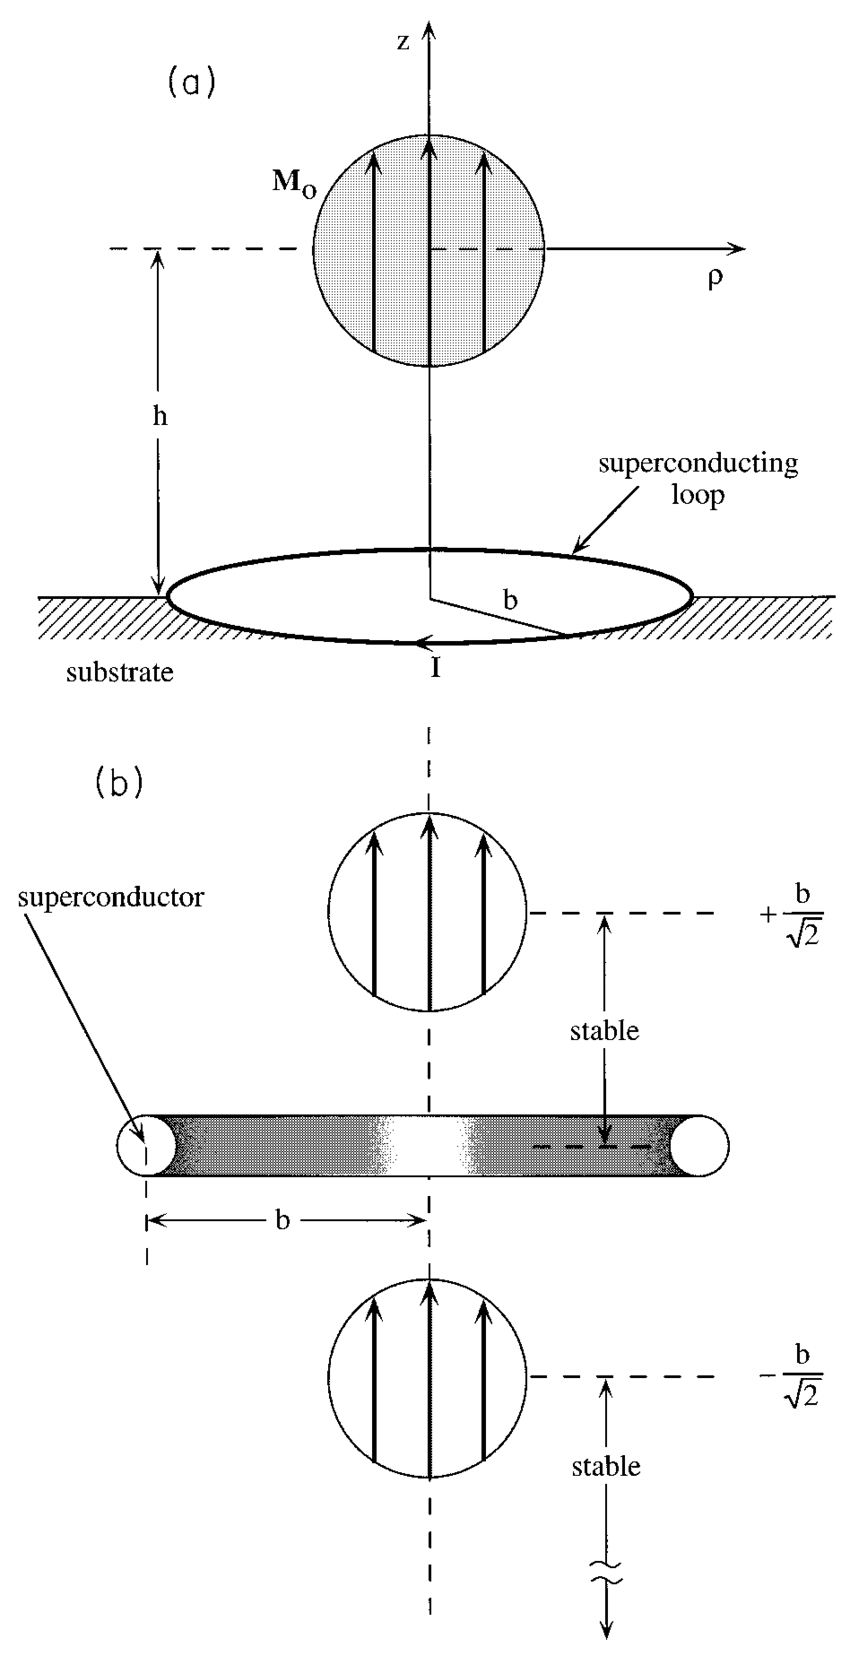 a The magnetic sphere of radius a is levitated by a